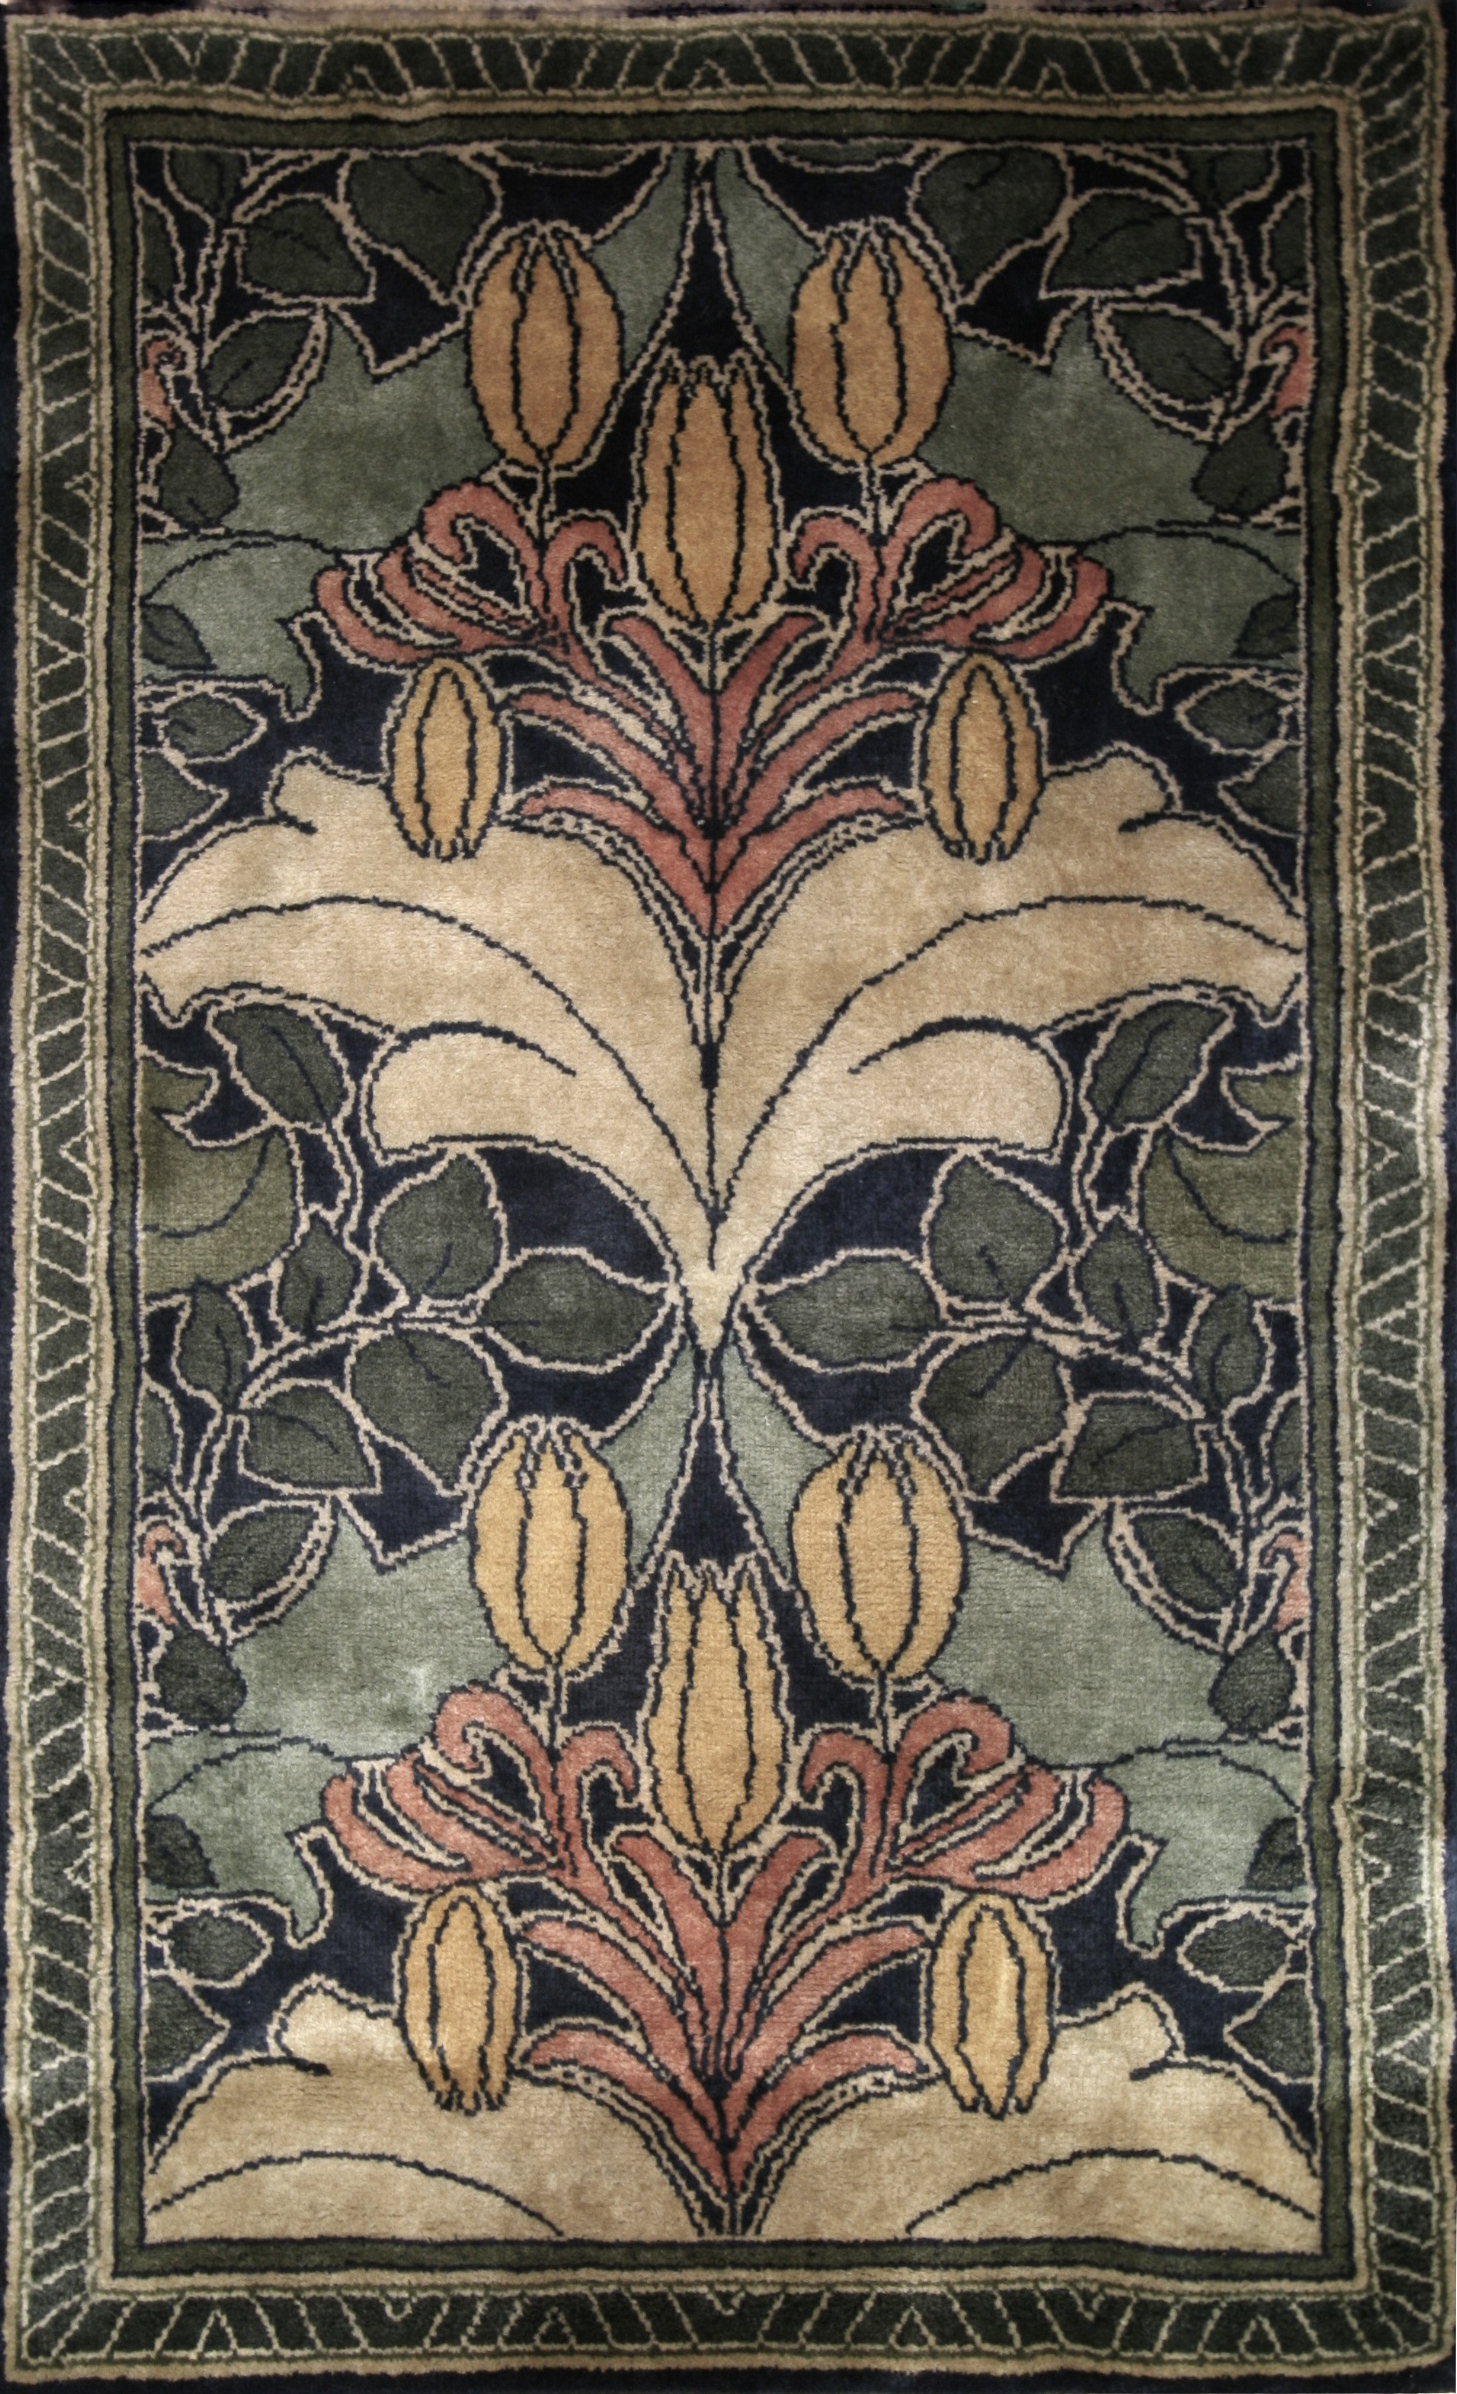 336 Donnemara Tulip and Lily, Handknotted in India with New Zealand Wool, 3' x 5'